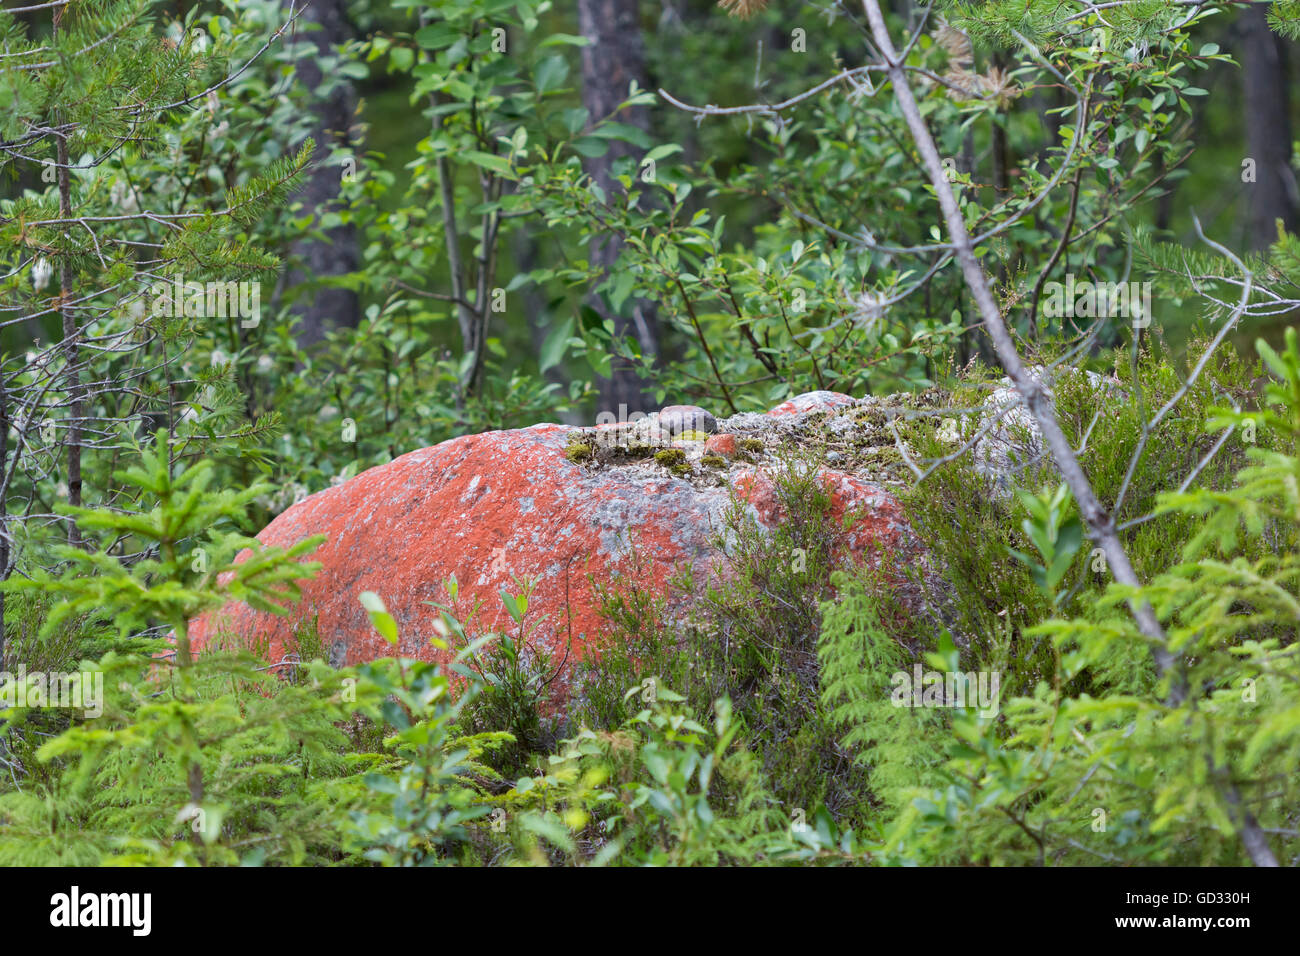 Red rock in northern Sweden - Stock Image